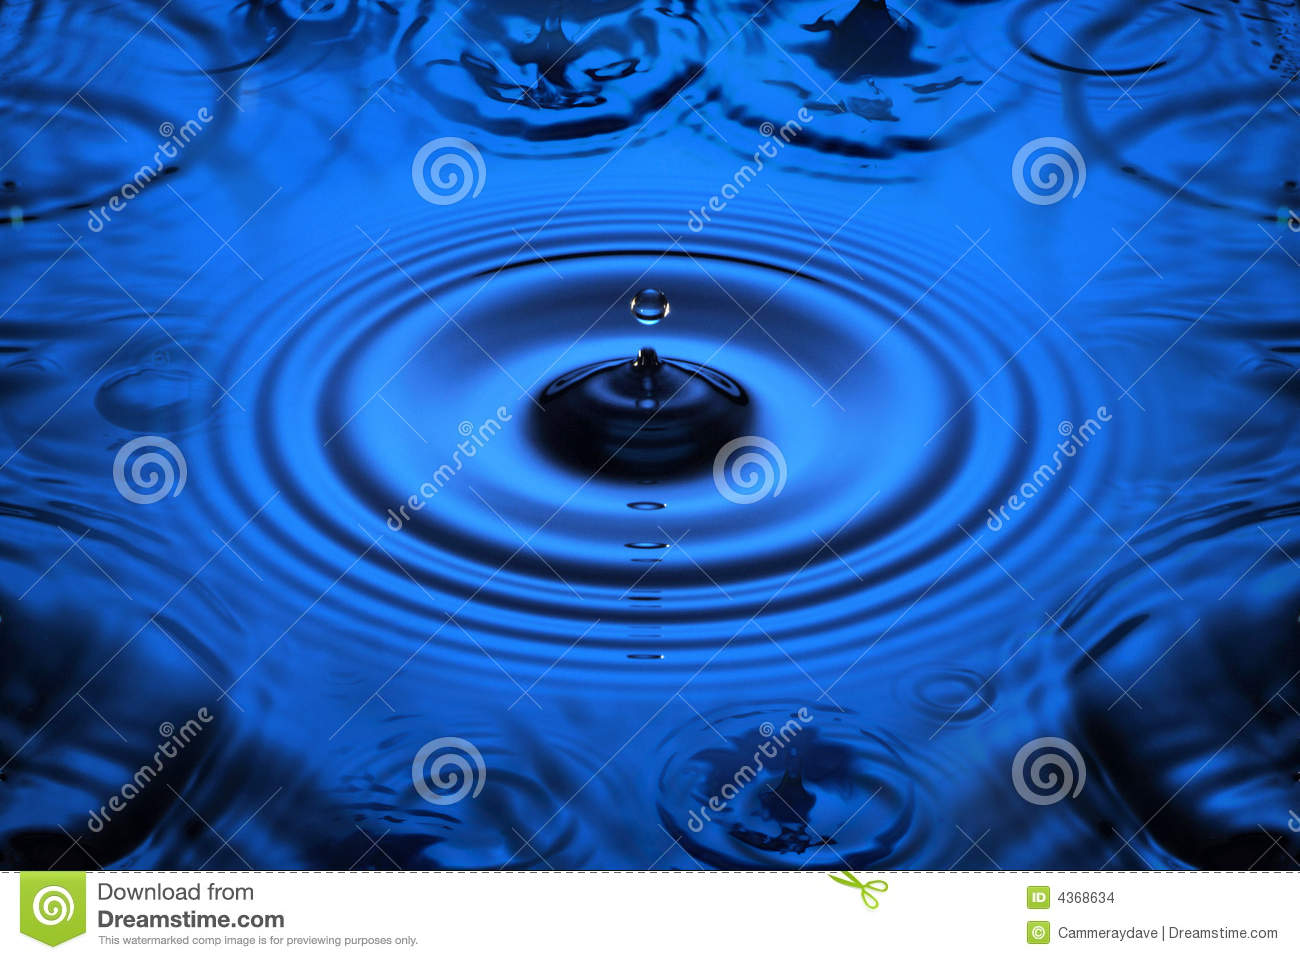 Water Ripples and Drops